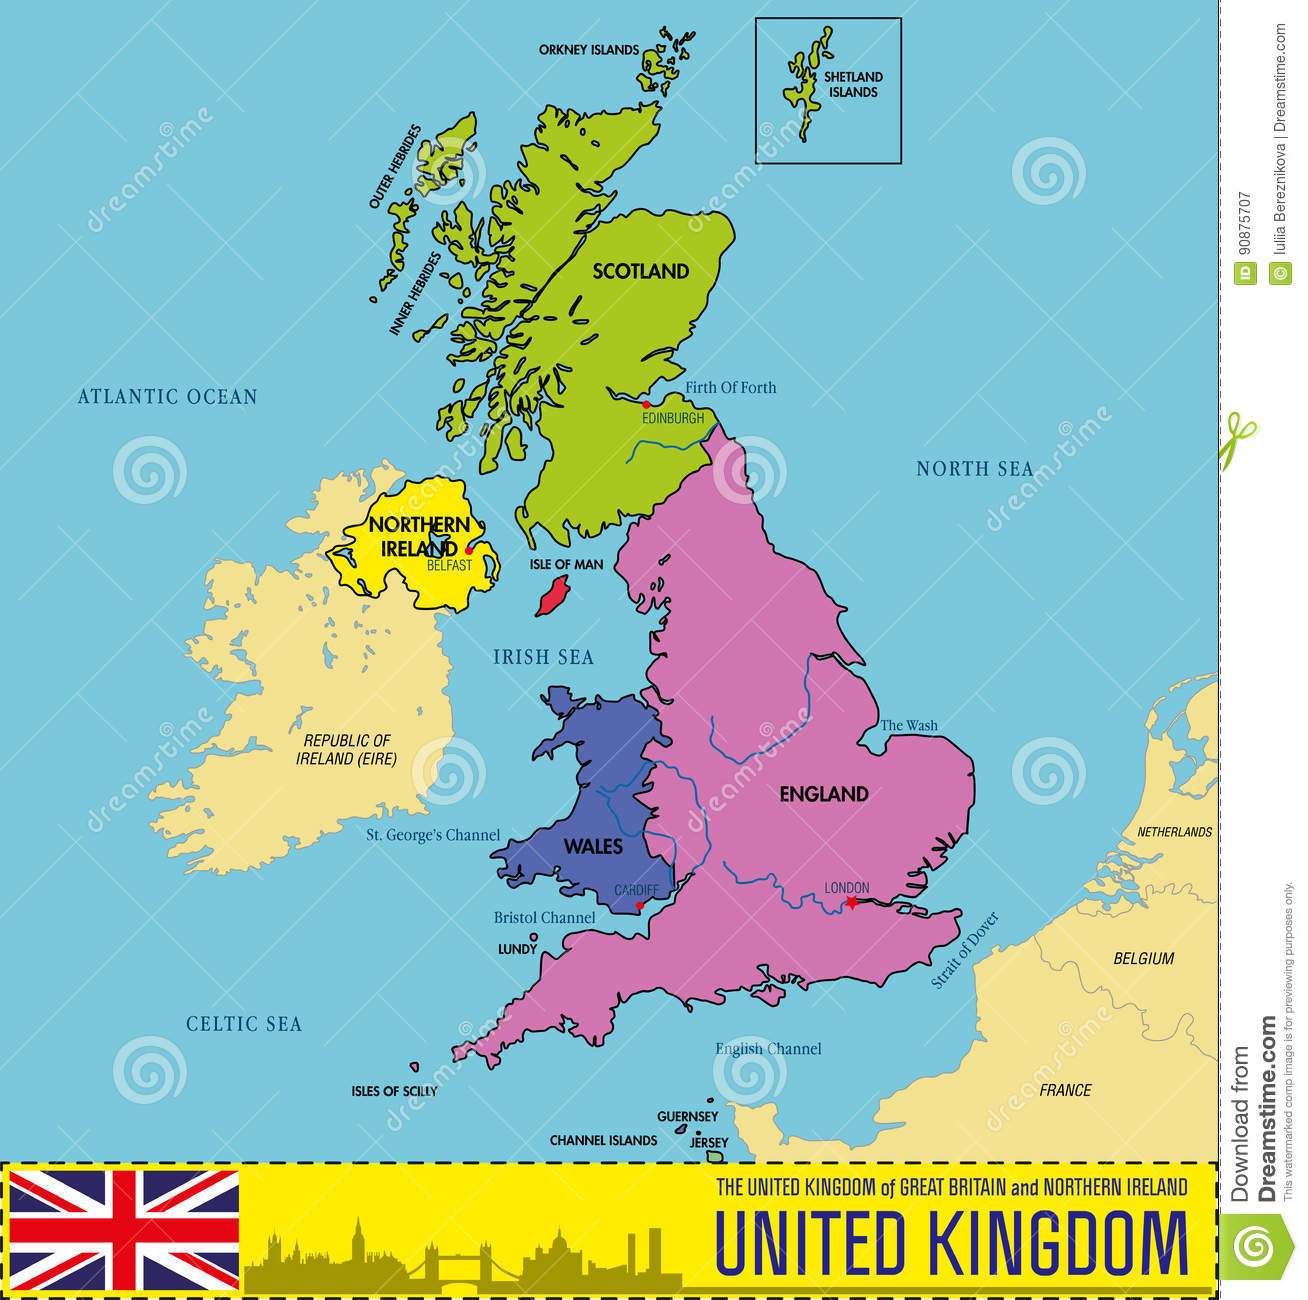 Map Of England Political.Political Map Of United Kingdom With Regions And Their Capitals